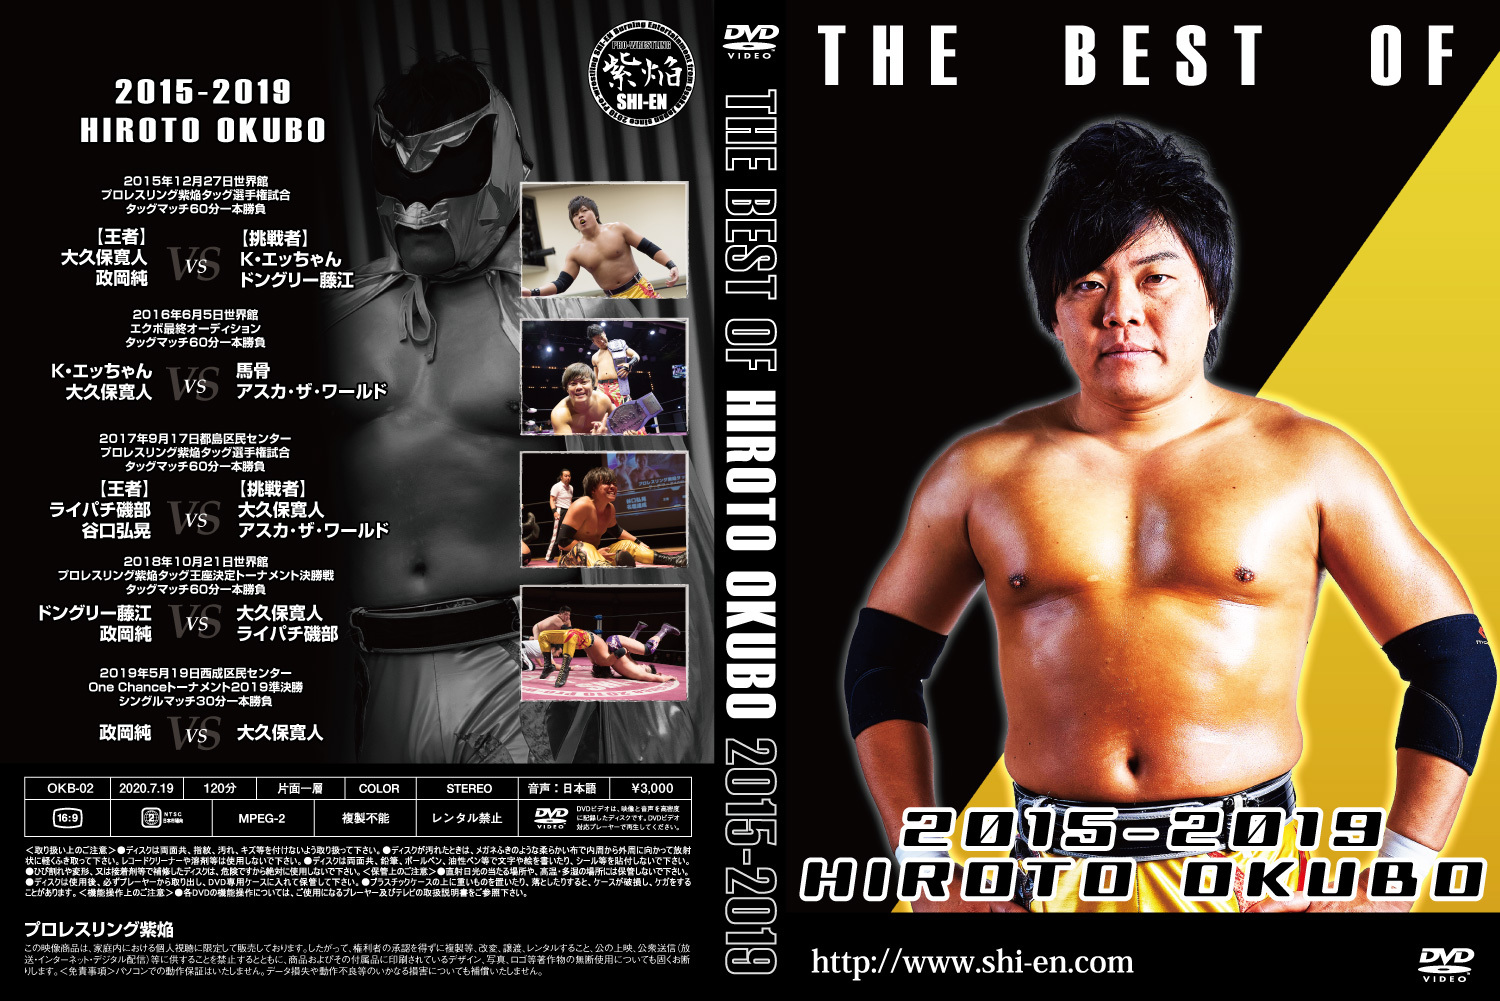 BEST OF THE 大久保寛人 2015-2019